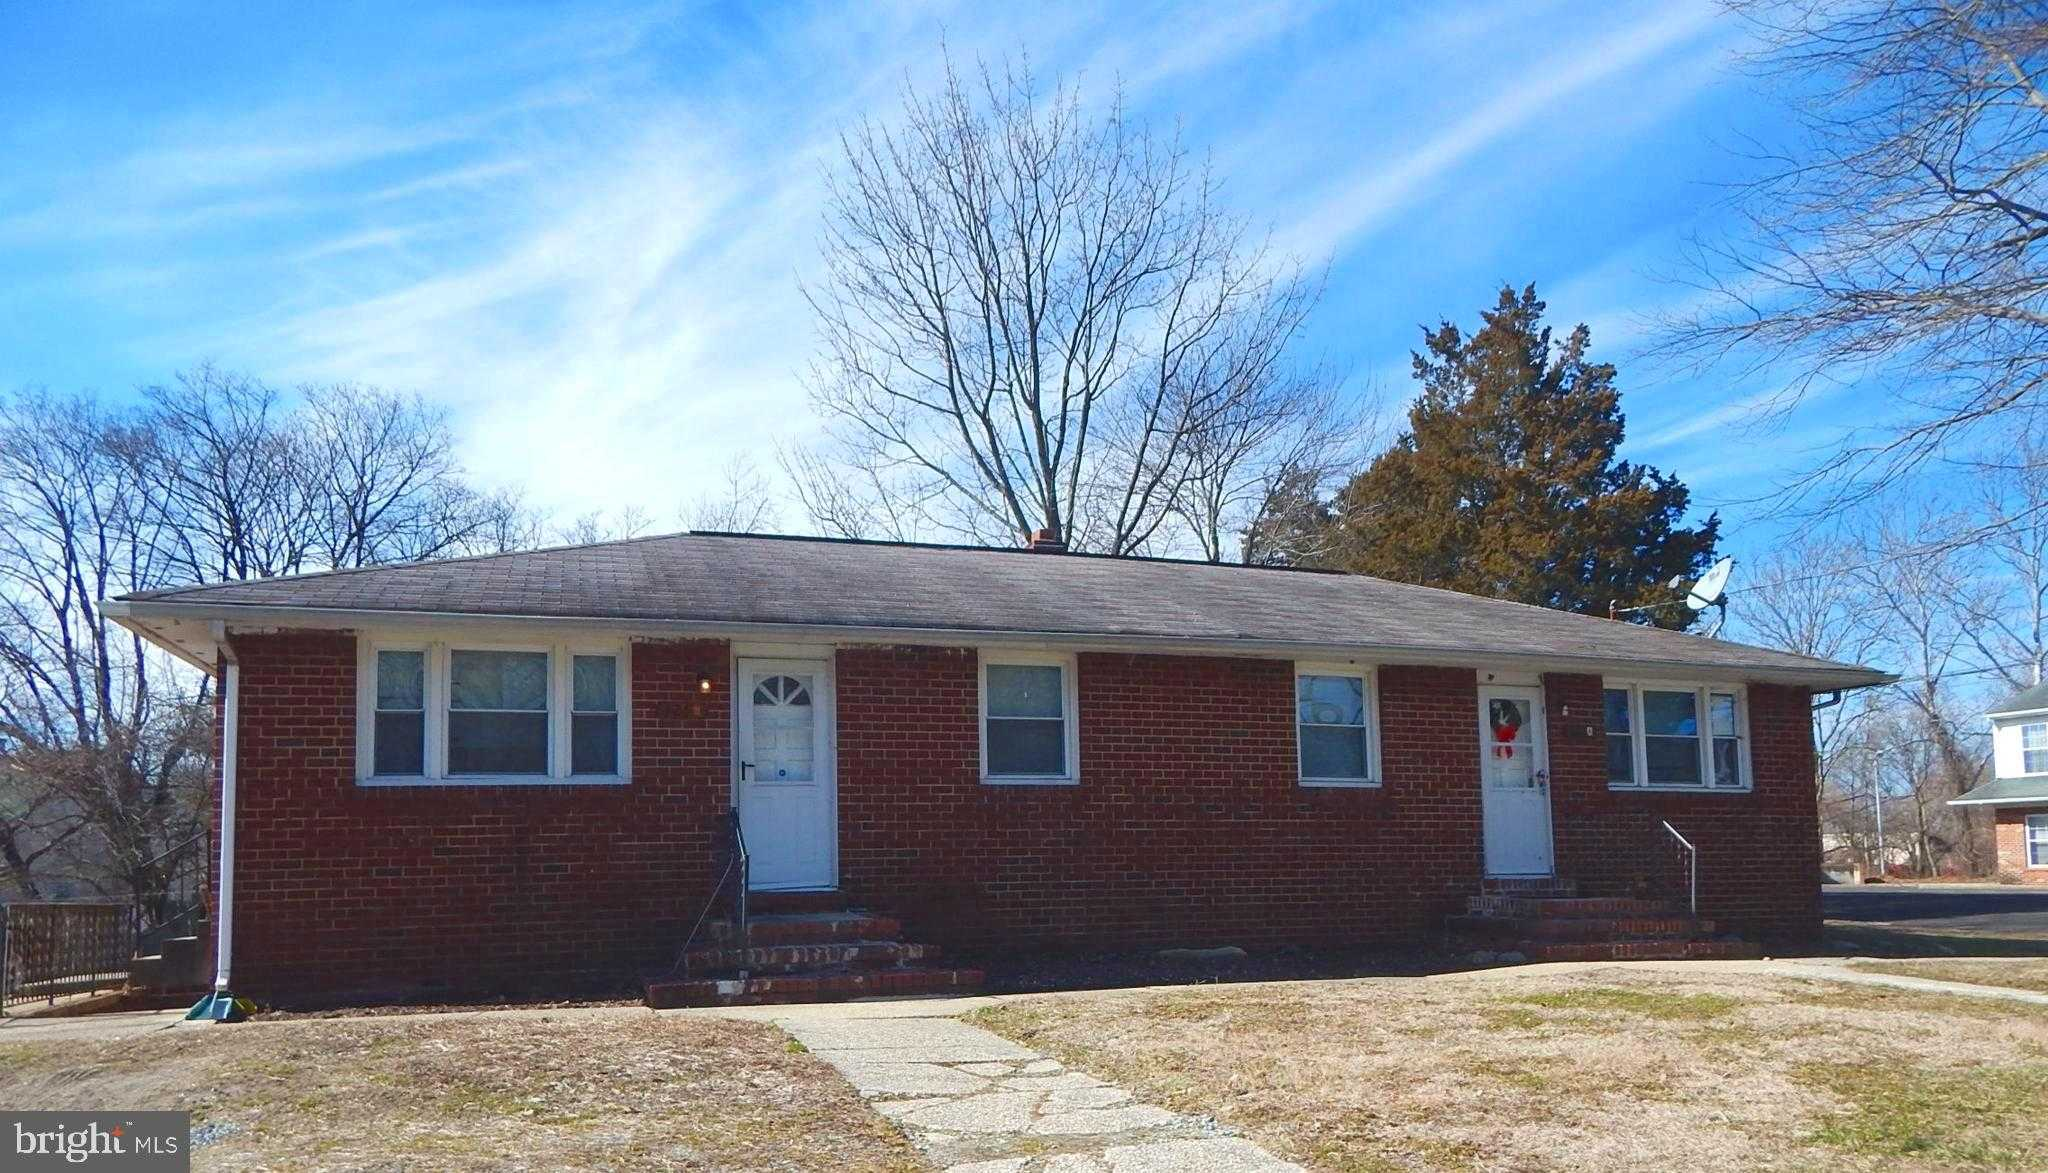 $160,000 - 2Br/1Ba -  for Sale in Not In Use, Sewell